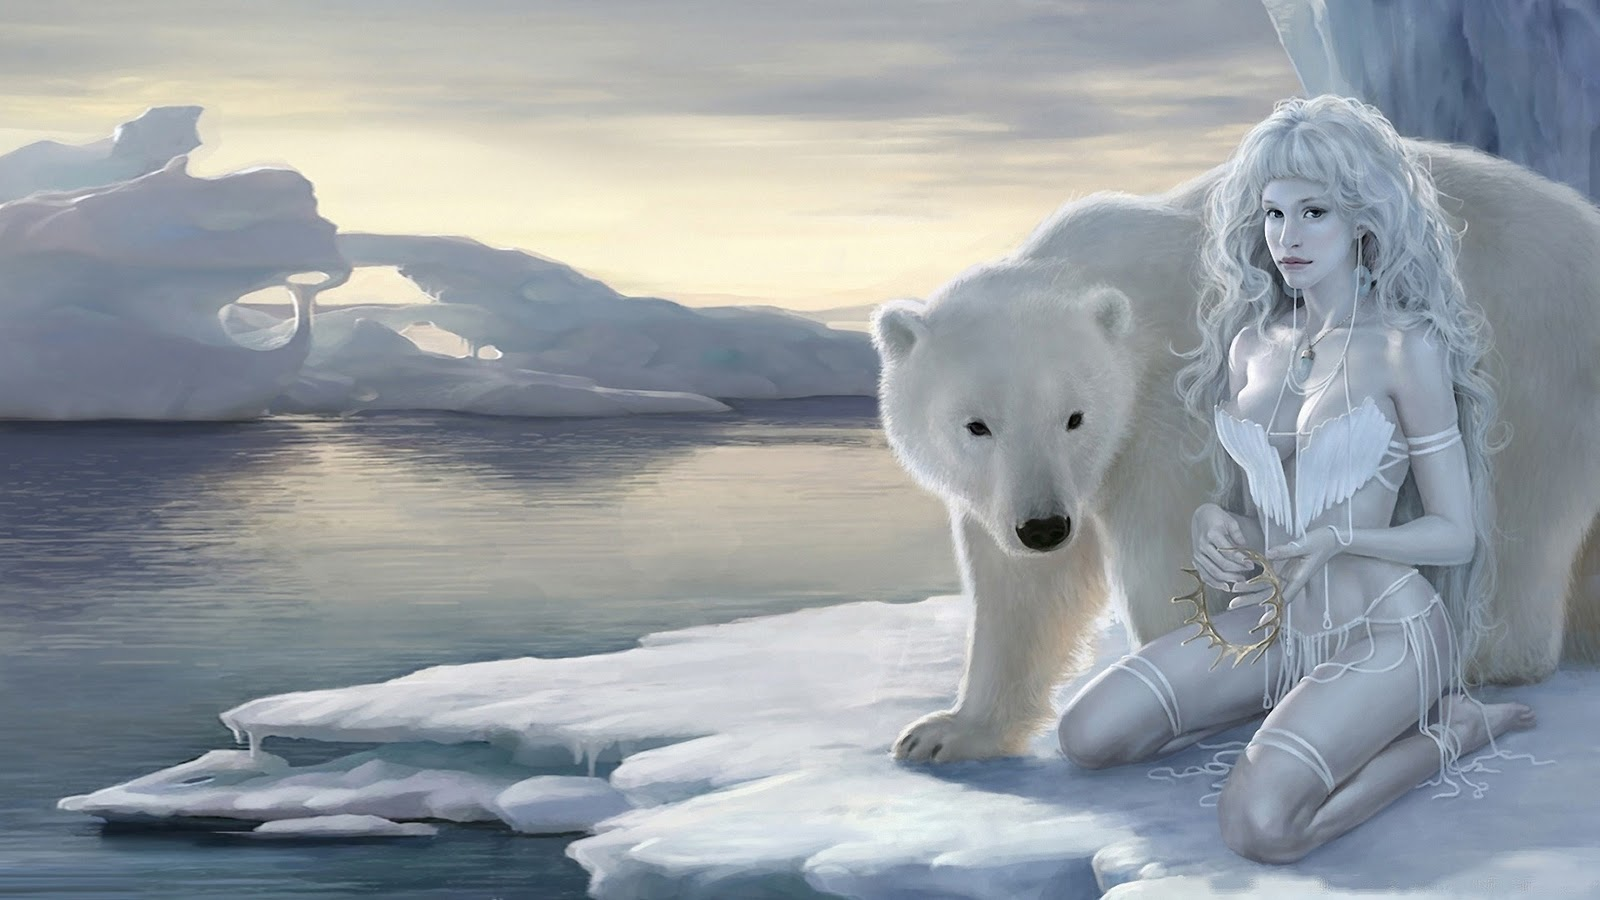 Polar Queen Ice beauty HD Wallpaper 1080p Hd Wallpaper 1600x900